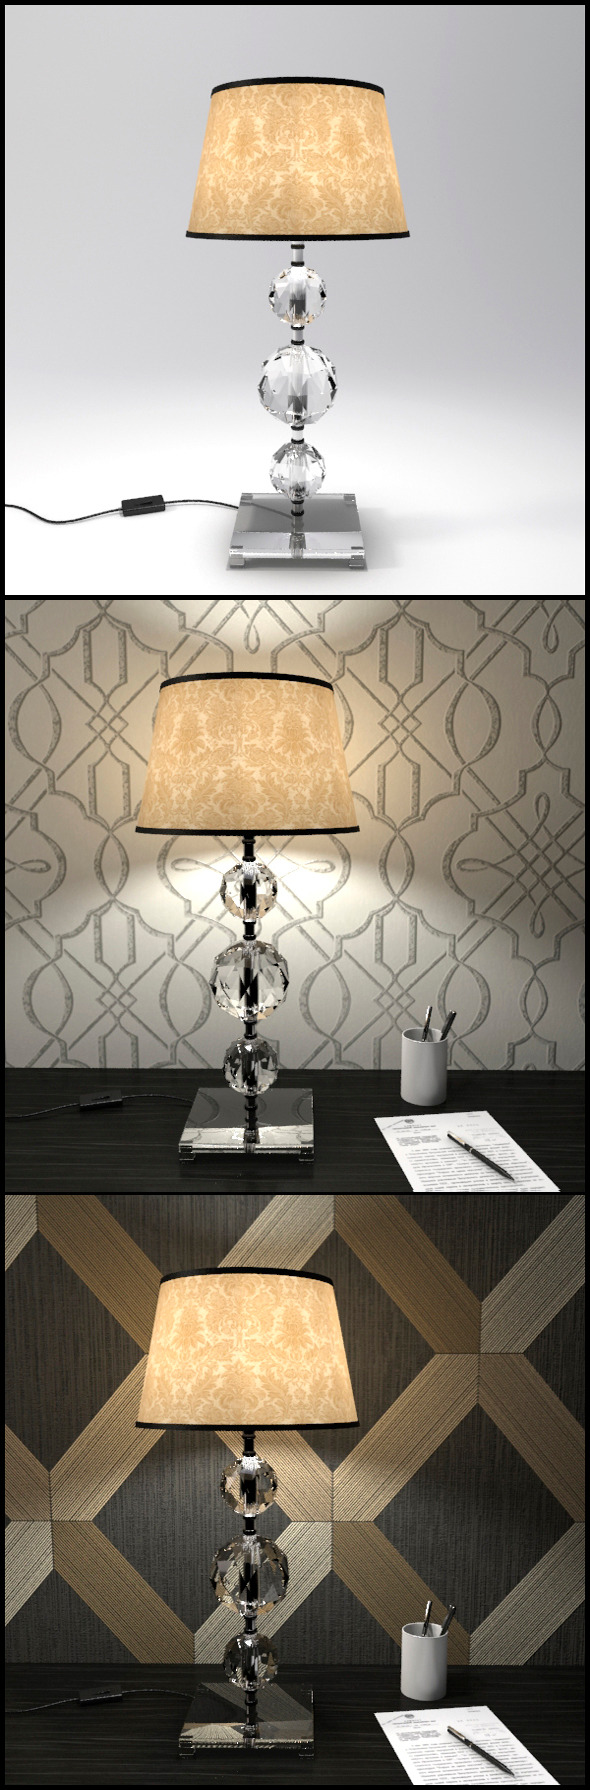 3DOcean Glass Geosphere Table Lamp #6 12368364